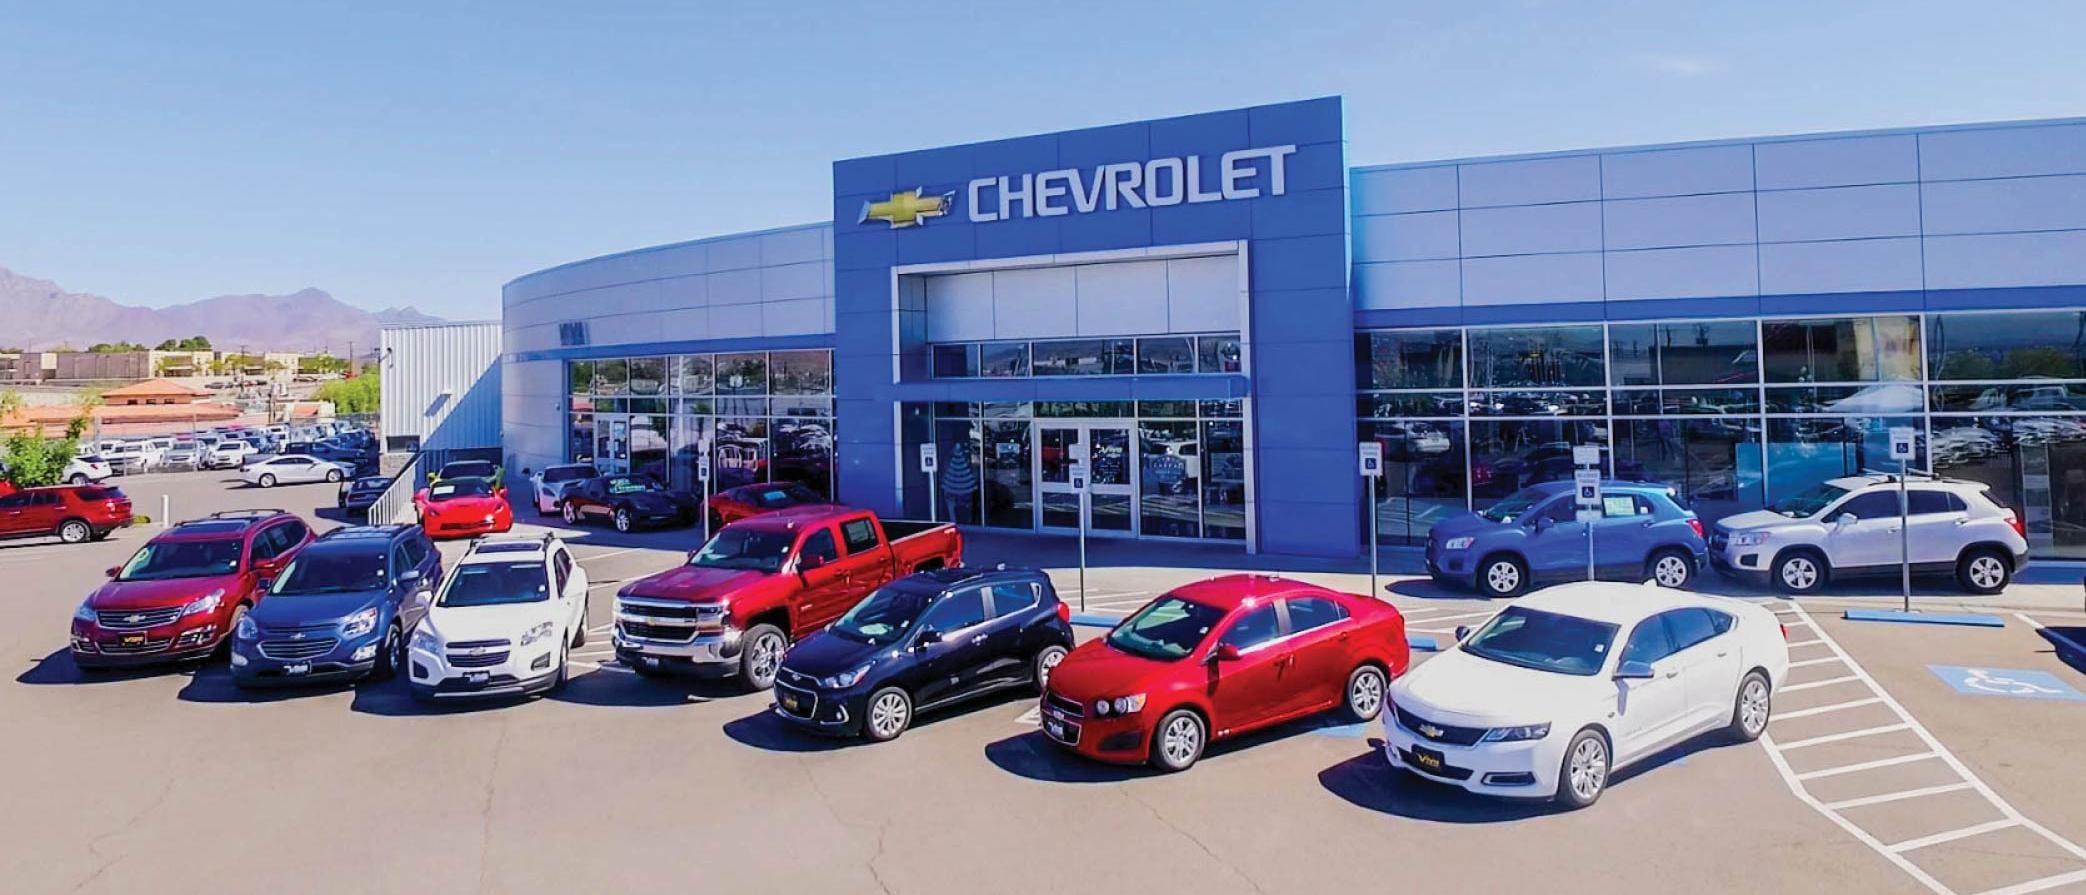 viva chevrolet chevrolet dealership in el paso tx viva chevrolet chevrolet dealership